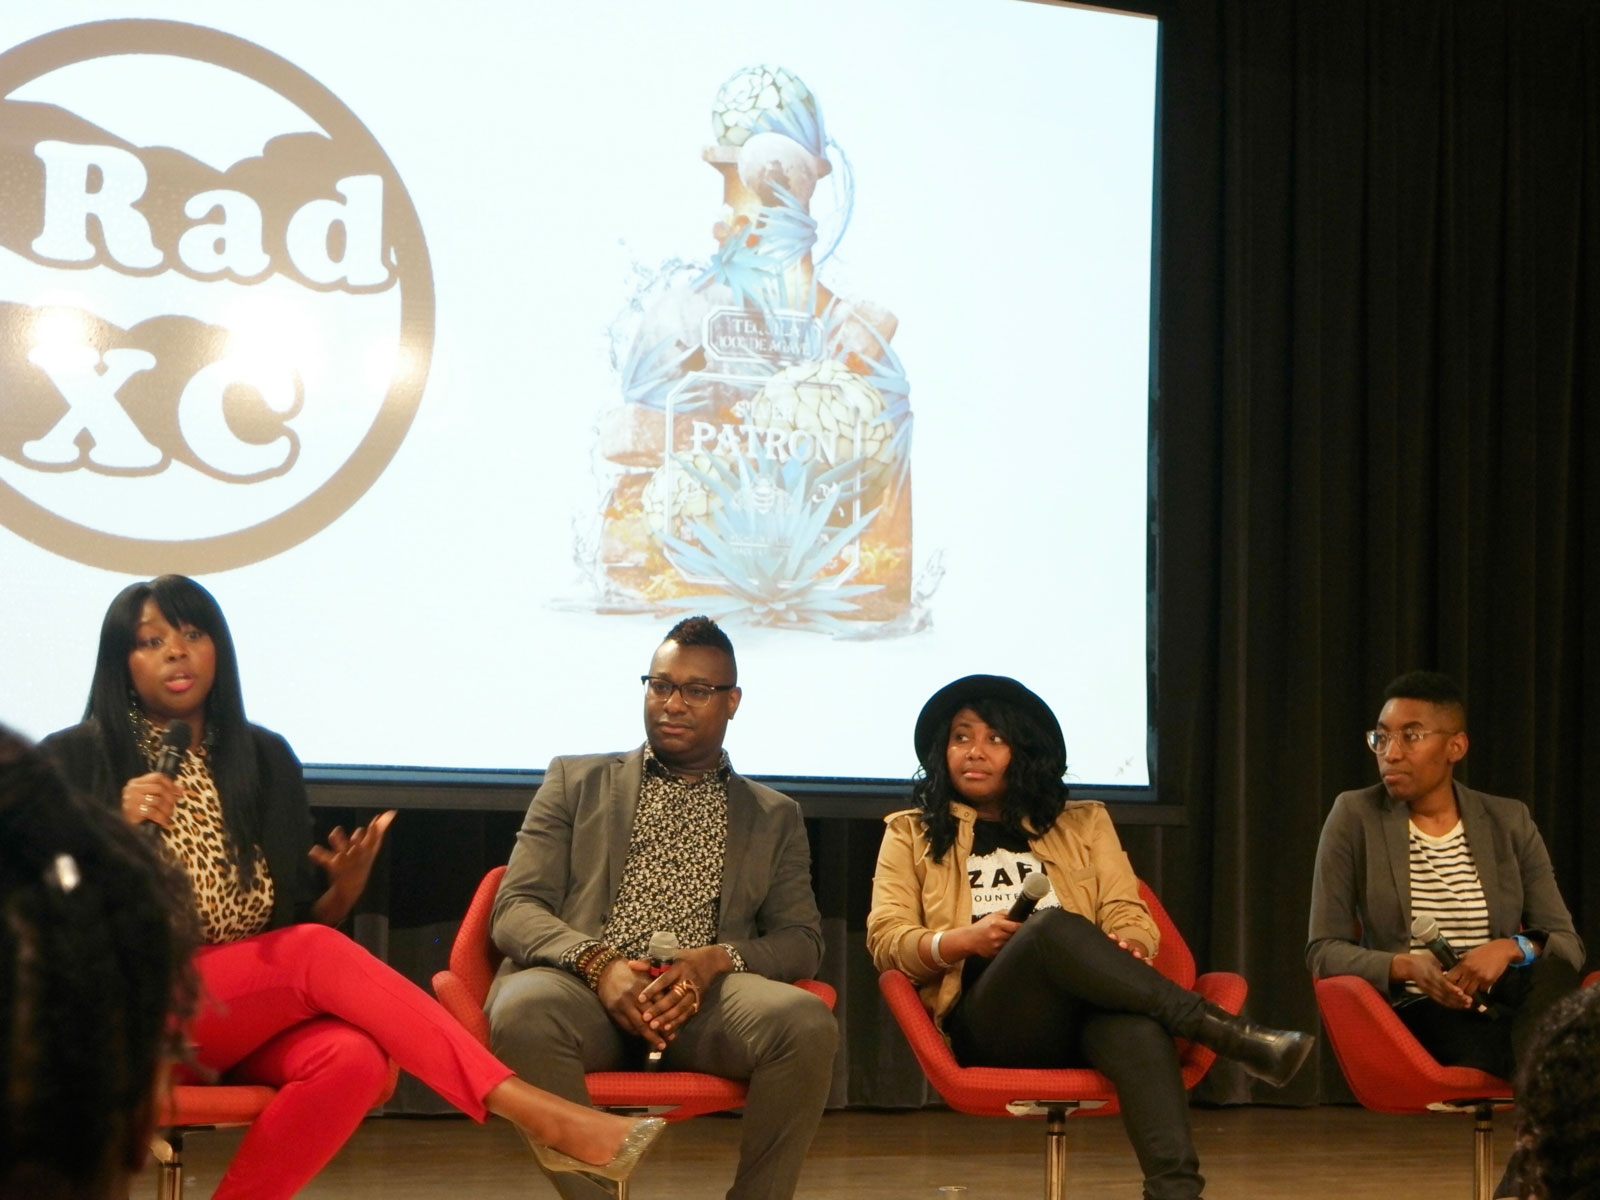 Radical XChange Panelists